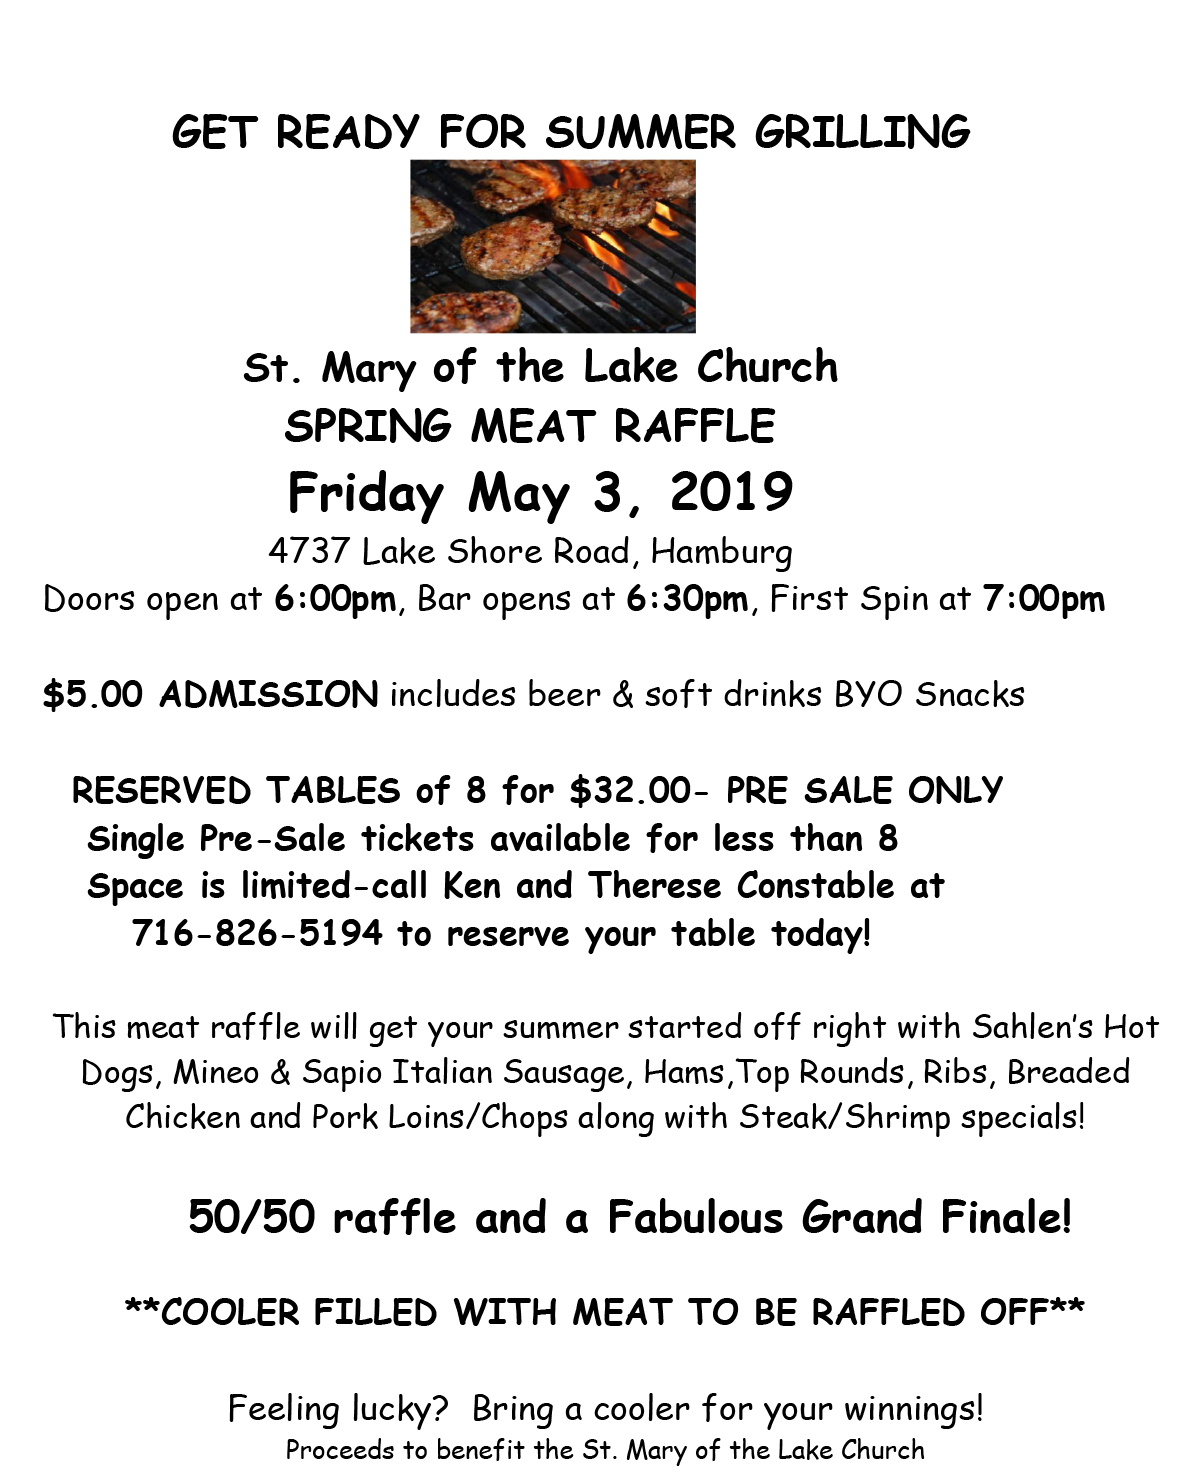 ST MARY OF THE LAKE SPRING MEAT RAFFLE FLYER__ 05-03-19.jpg